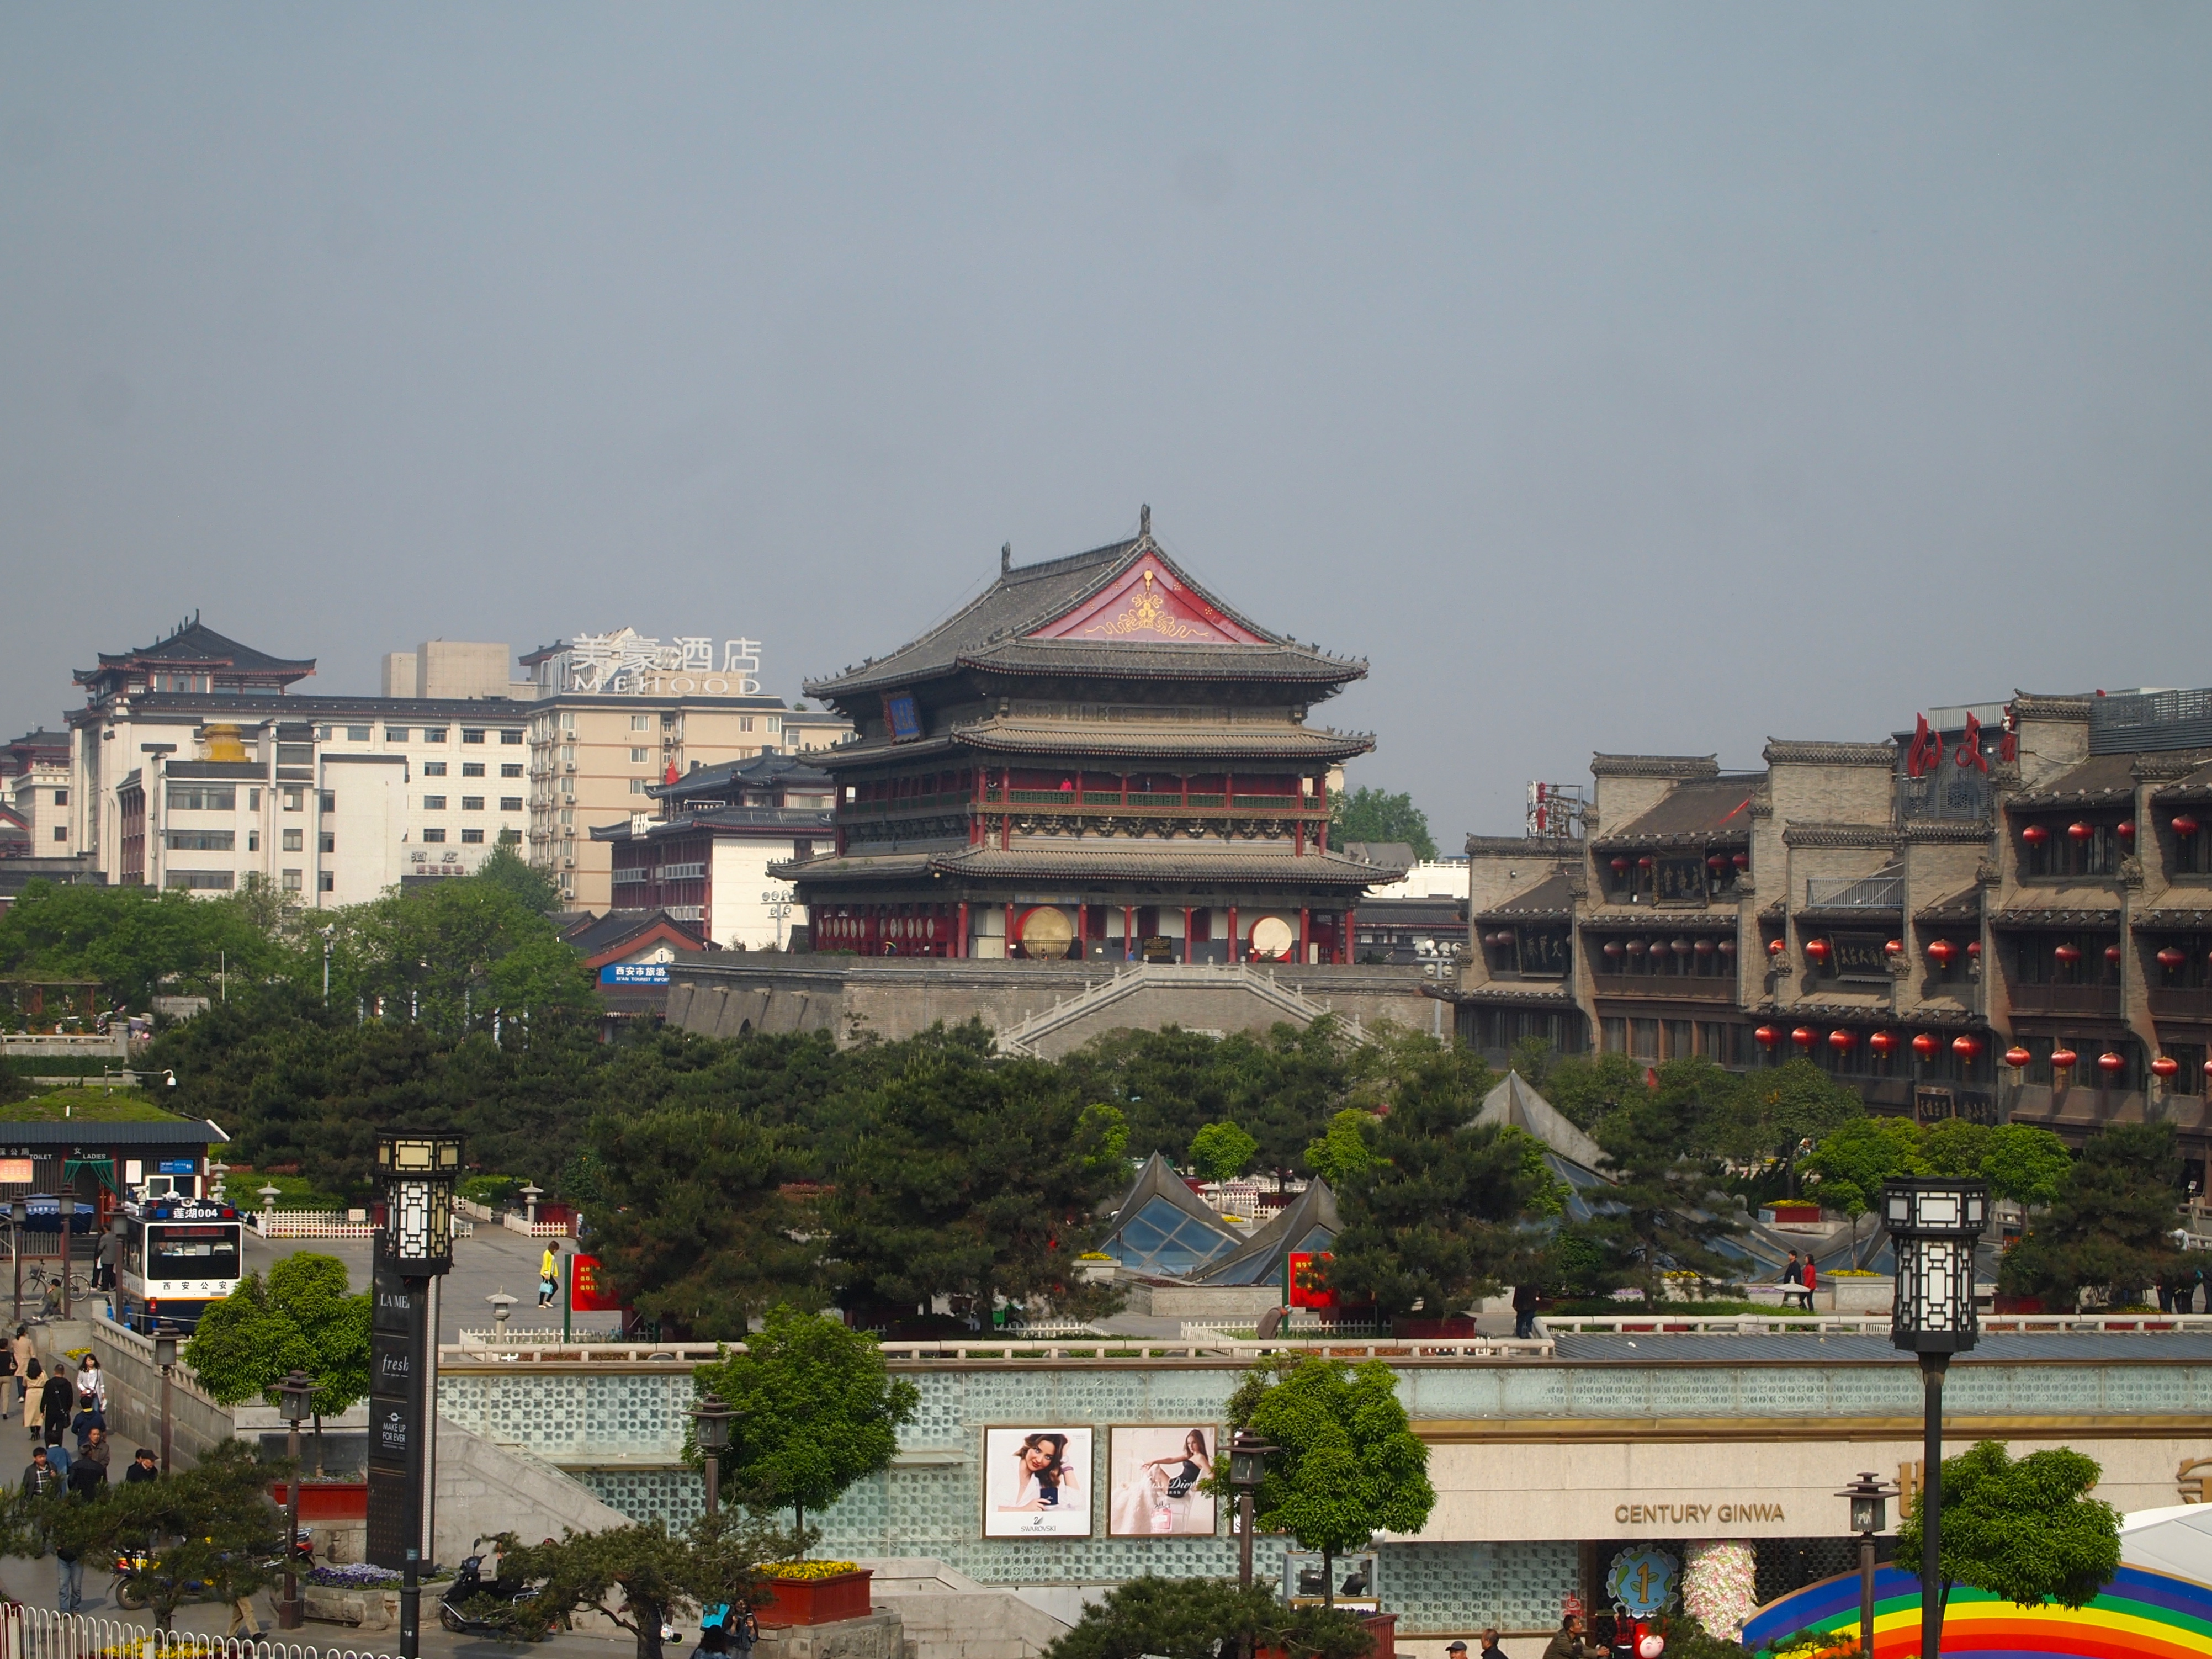 7 Days Inn Xian Bell Tower Brach The Bell Tower The Drum Tower In Xian China Diaries